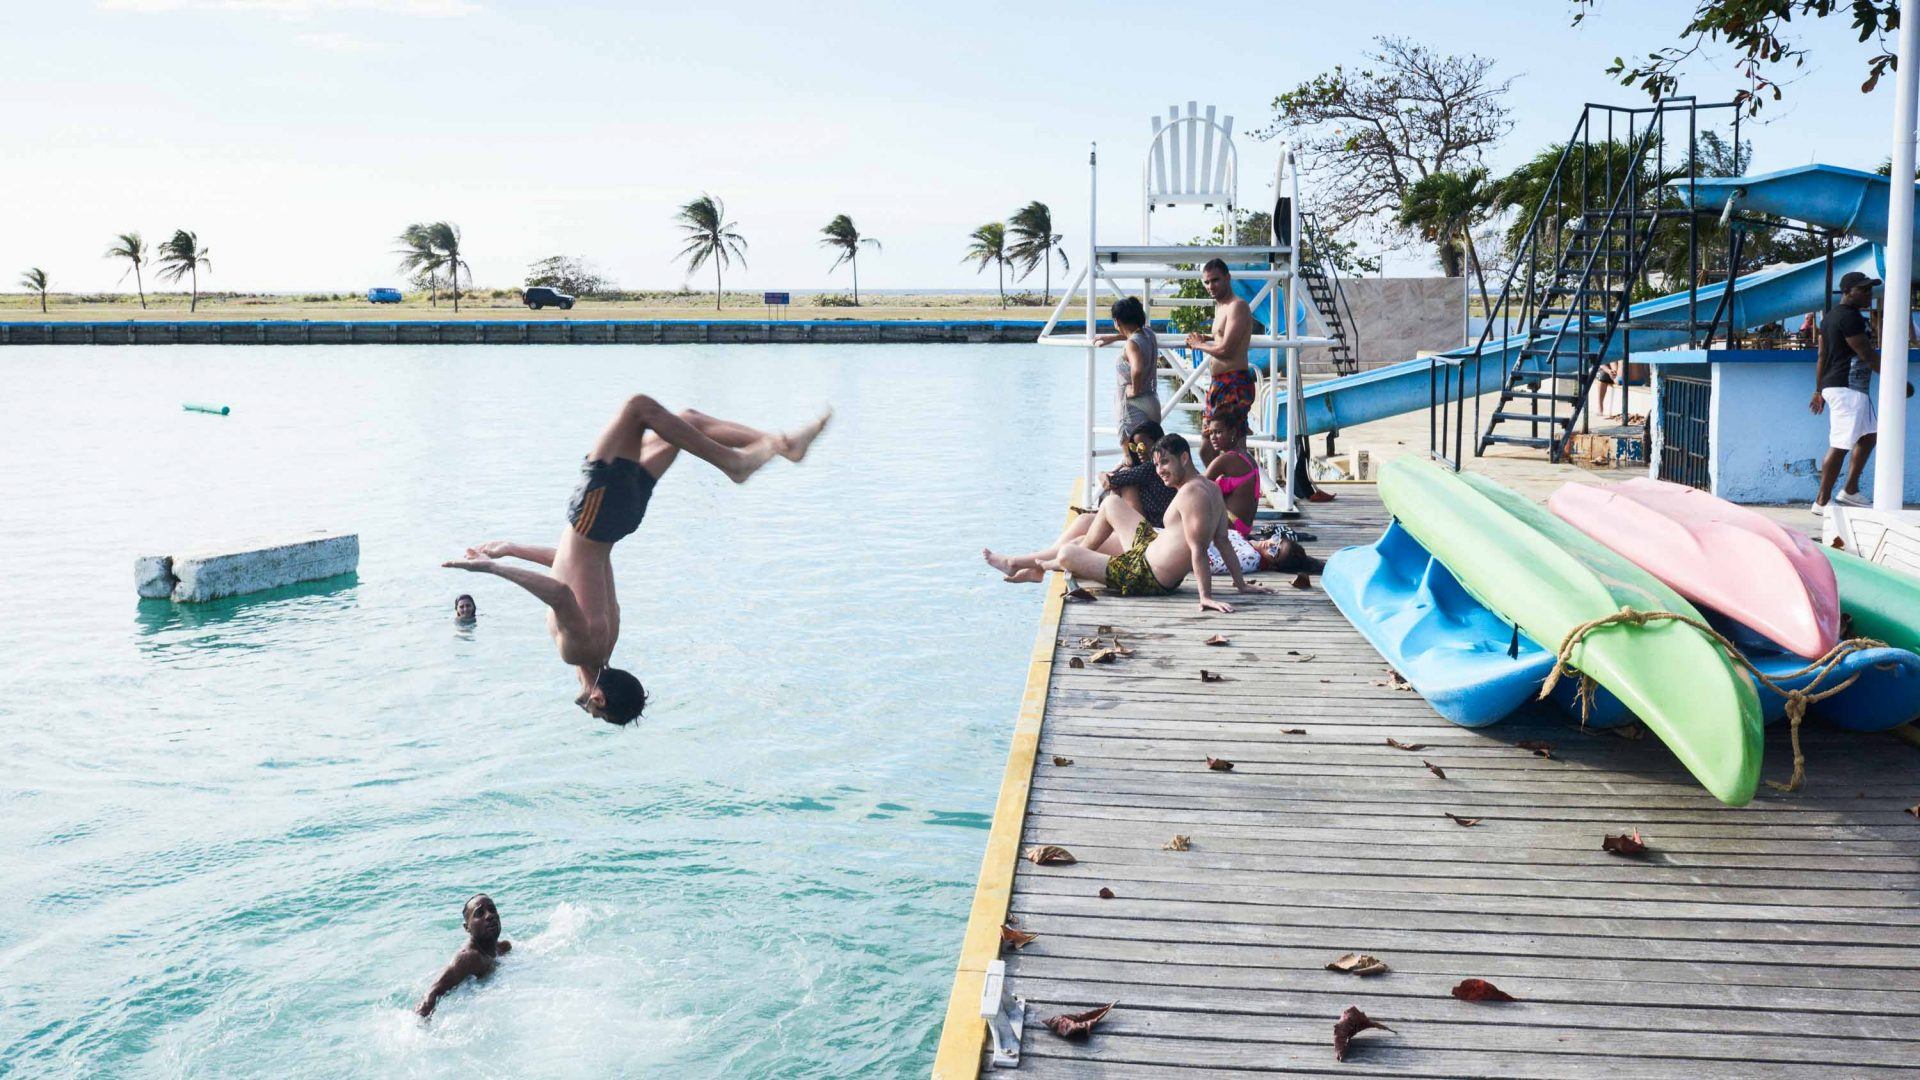 Cooling off in Cuba: A love letter to Havana's swimming spots